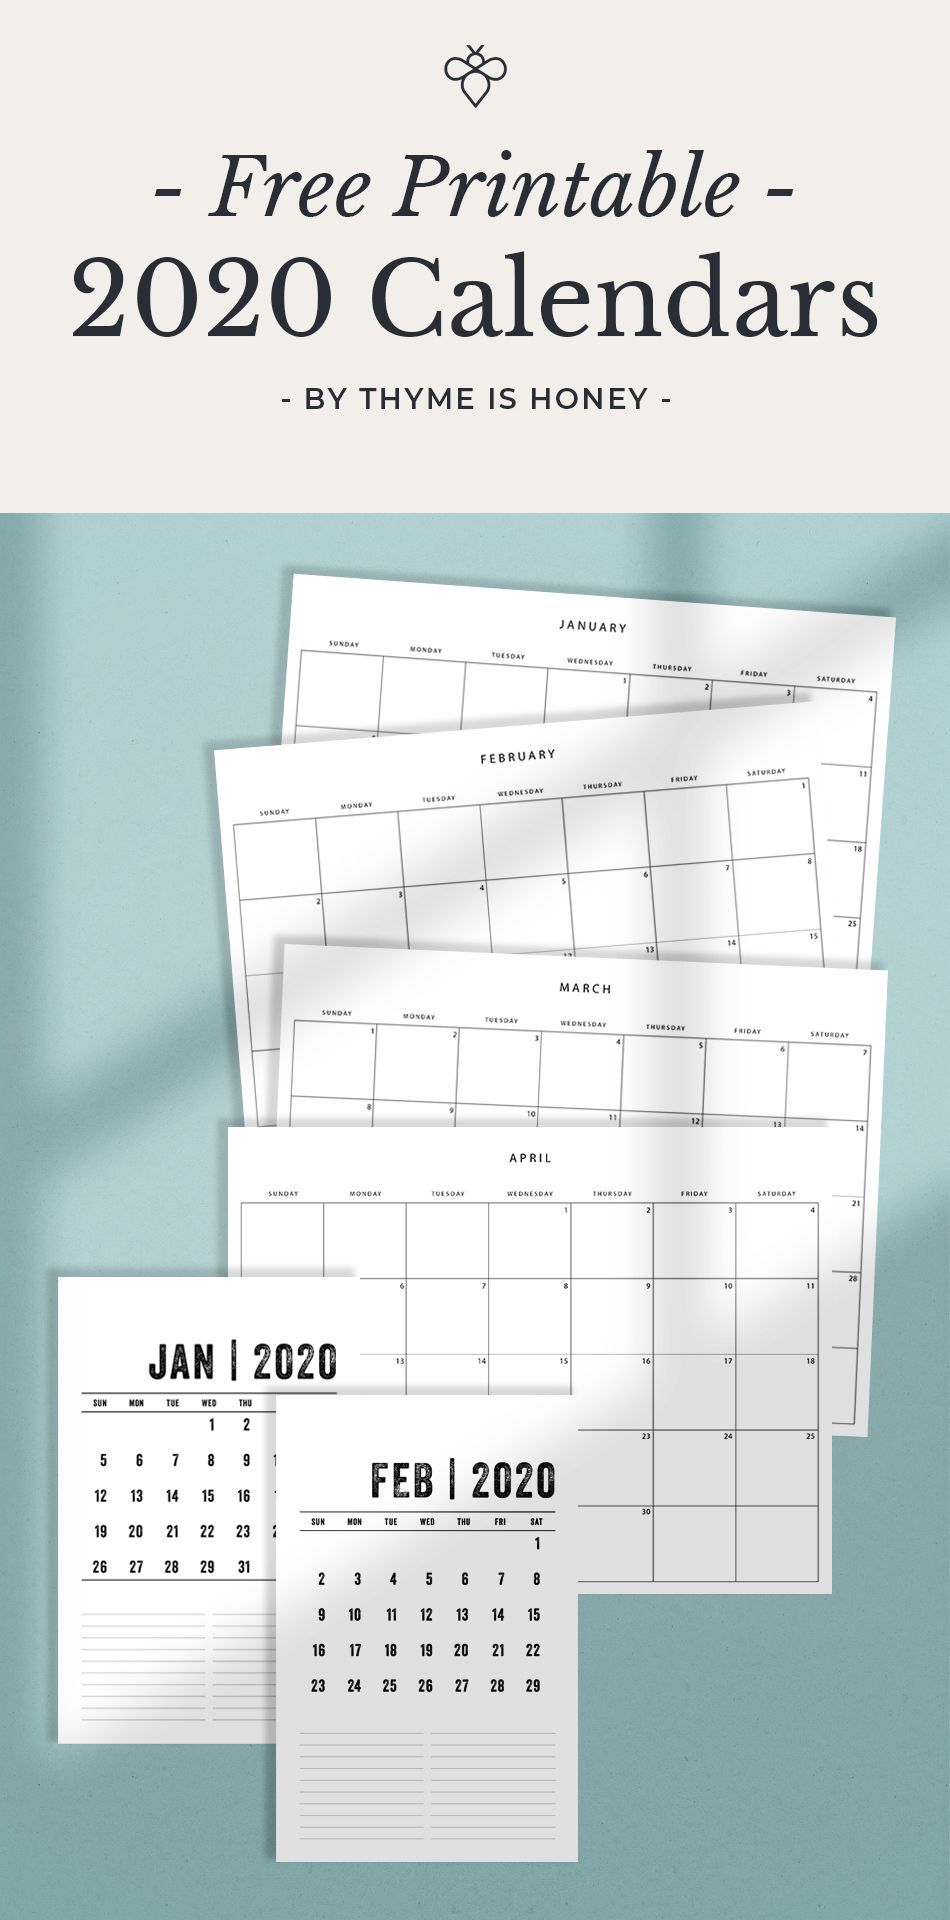 Free Printable 2020 Calendars #teacherplannerfree Free Printable 2020 Calendars: simple, minimalist calendars to help you organize your year | Designed by Thyme is Honey. . . Organization | Planning | 2020 | New Year | Wellness | Health | Office Decor | Planner | Printable | Free Calendar | Teacher Printables | 2020 | | Bulletin Board | Paper | Design #teacherplannerfree